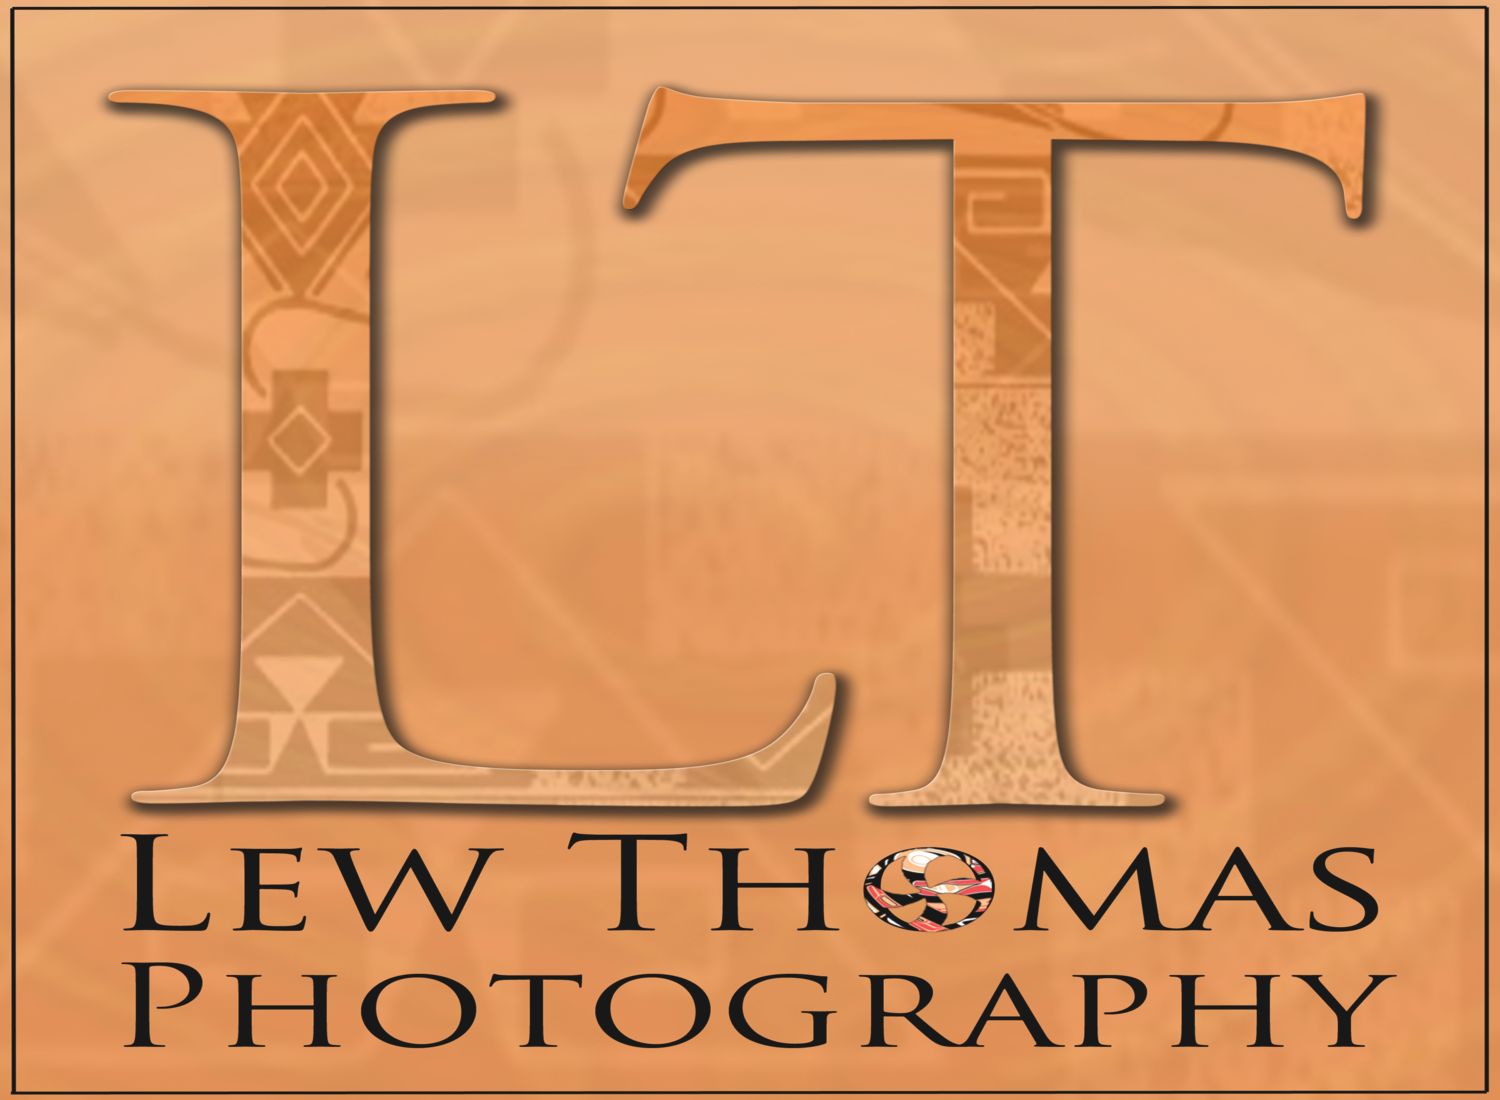 Lew Thomas Photography